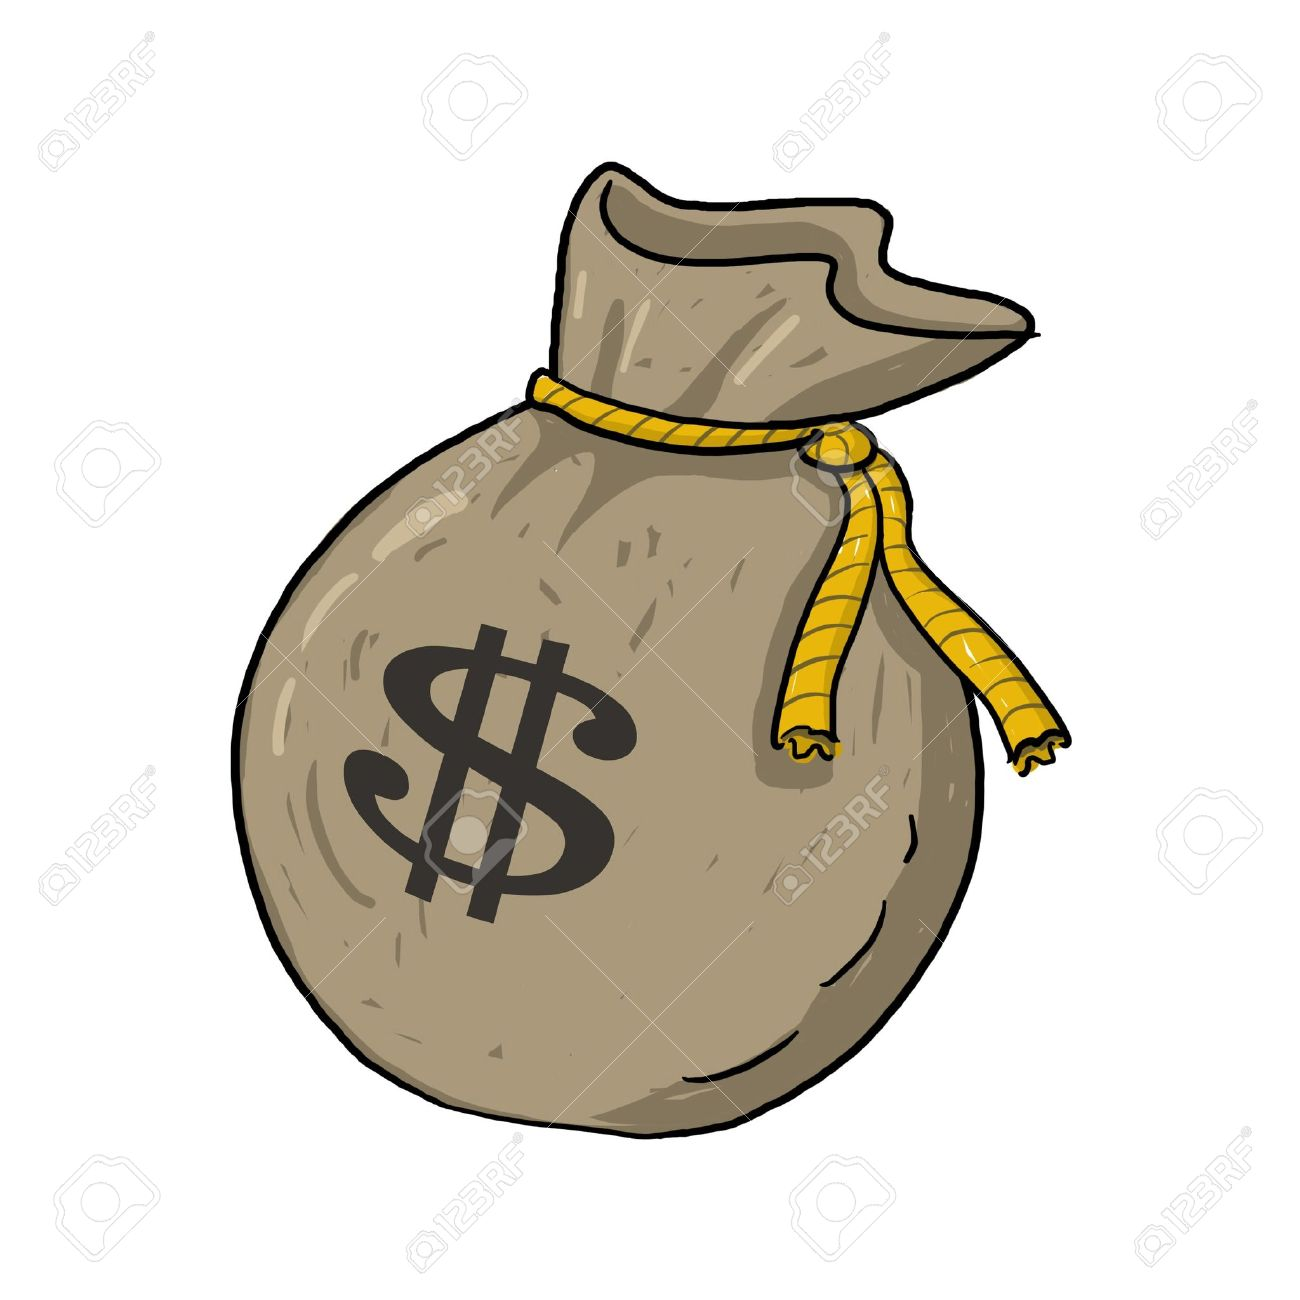 Sack of money with dollar sign illustration; Green sack of money drawing; Isolated money bag with dollar sign on it; sack of money with $ sign cartoon style illustration Stock Illustration - 9640753